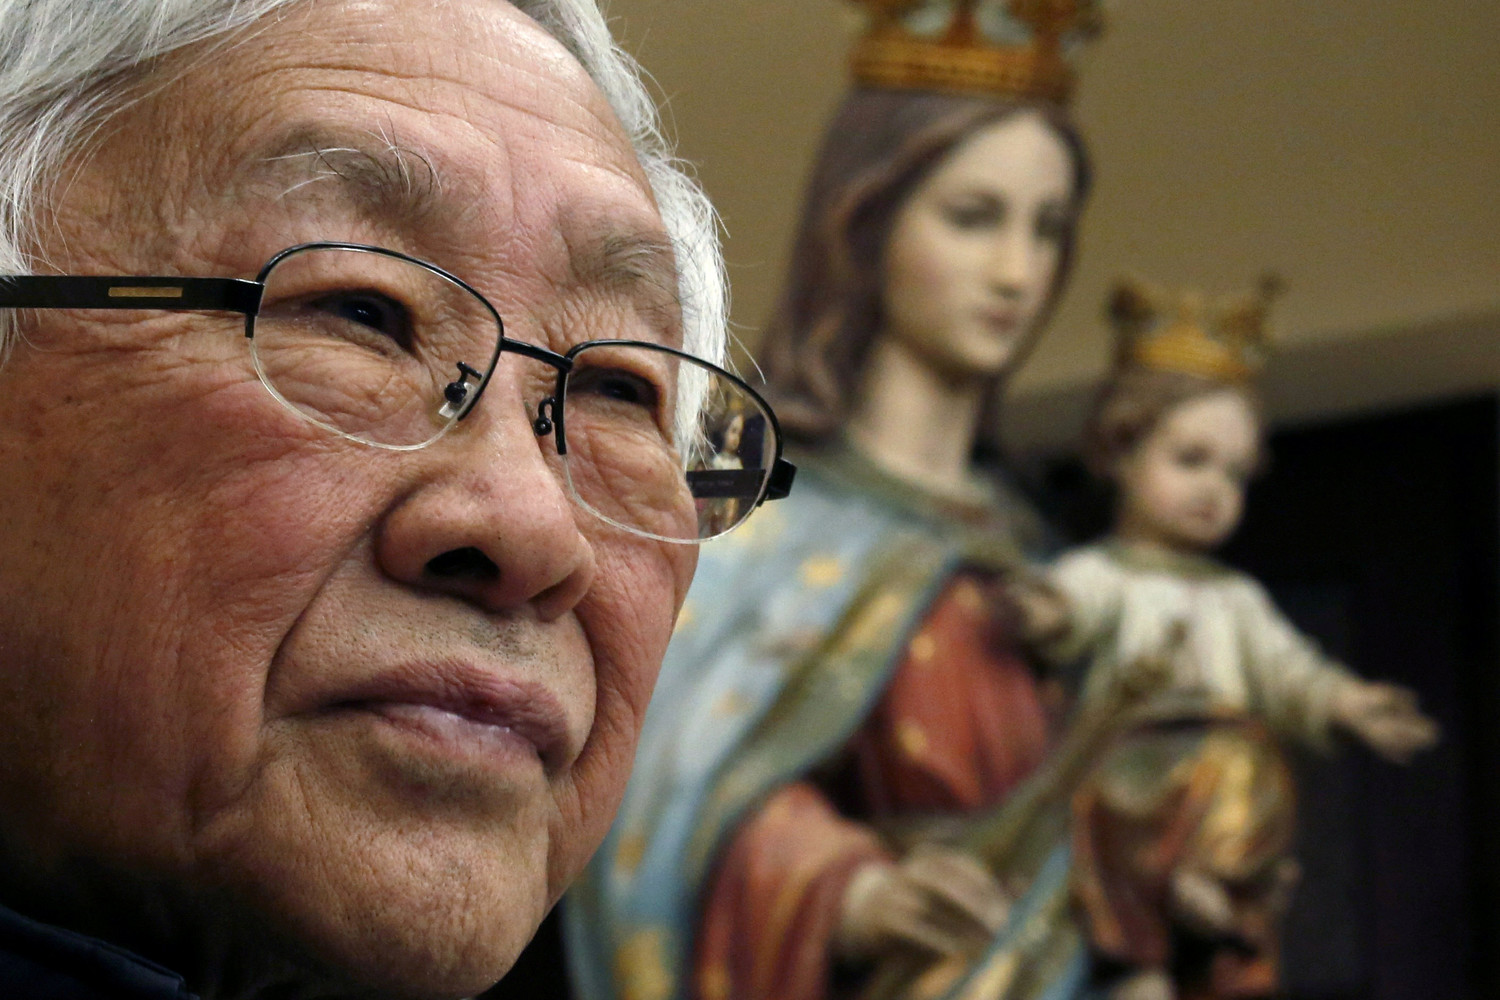 Cardinal Joseph Zen Ze-kiun, retired archbishop of Hong Kong, attends an early February news conference in Hong Kong. For the first time in decades, all of the Catholic bishops in China are in full communion with the Pope, the Vatican announced Sept. 22.